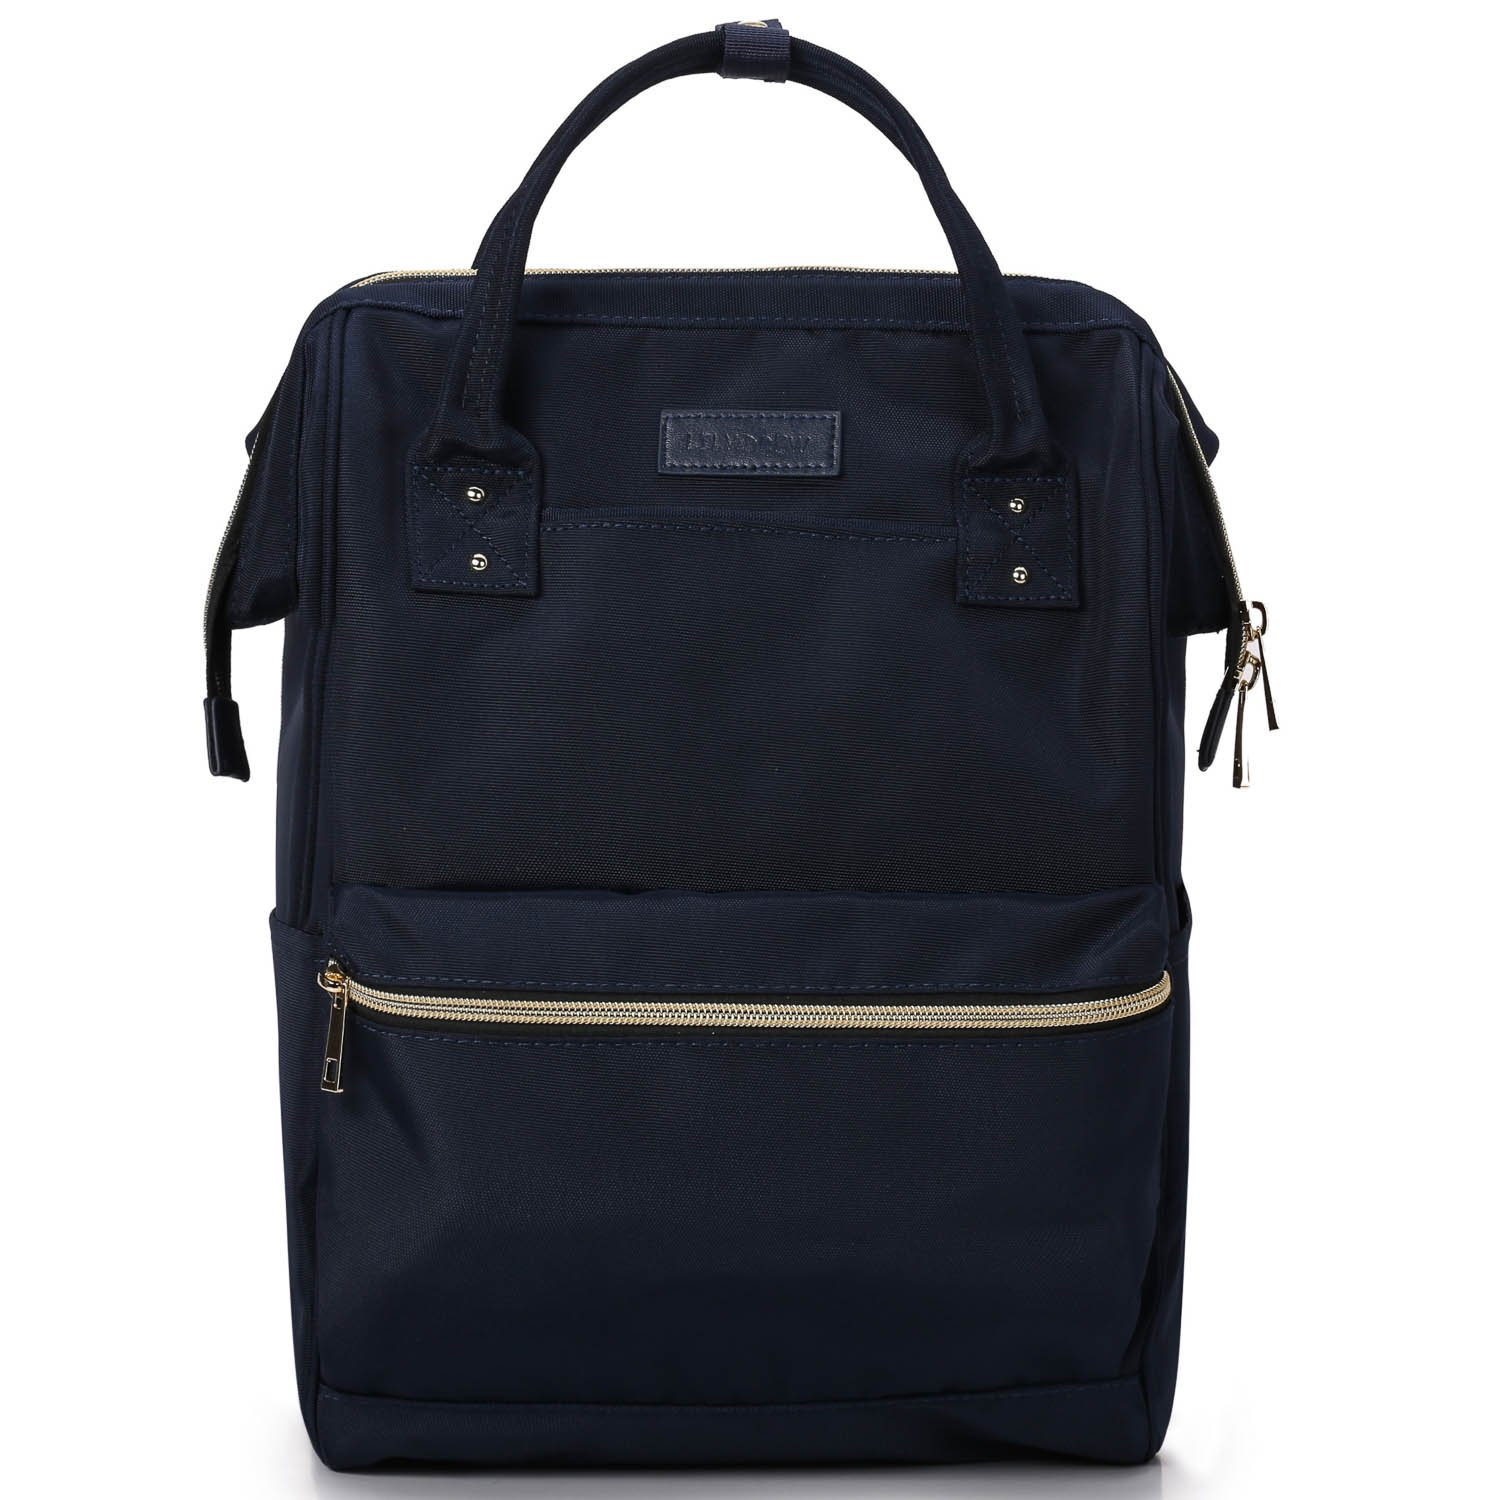 Lily & Drew Casual Travel Daypack School Backpack for Men Women and Laptop Computer, with Doctor Style Top Opening (V4 Dark Blue Medium)